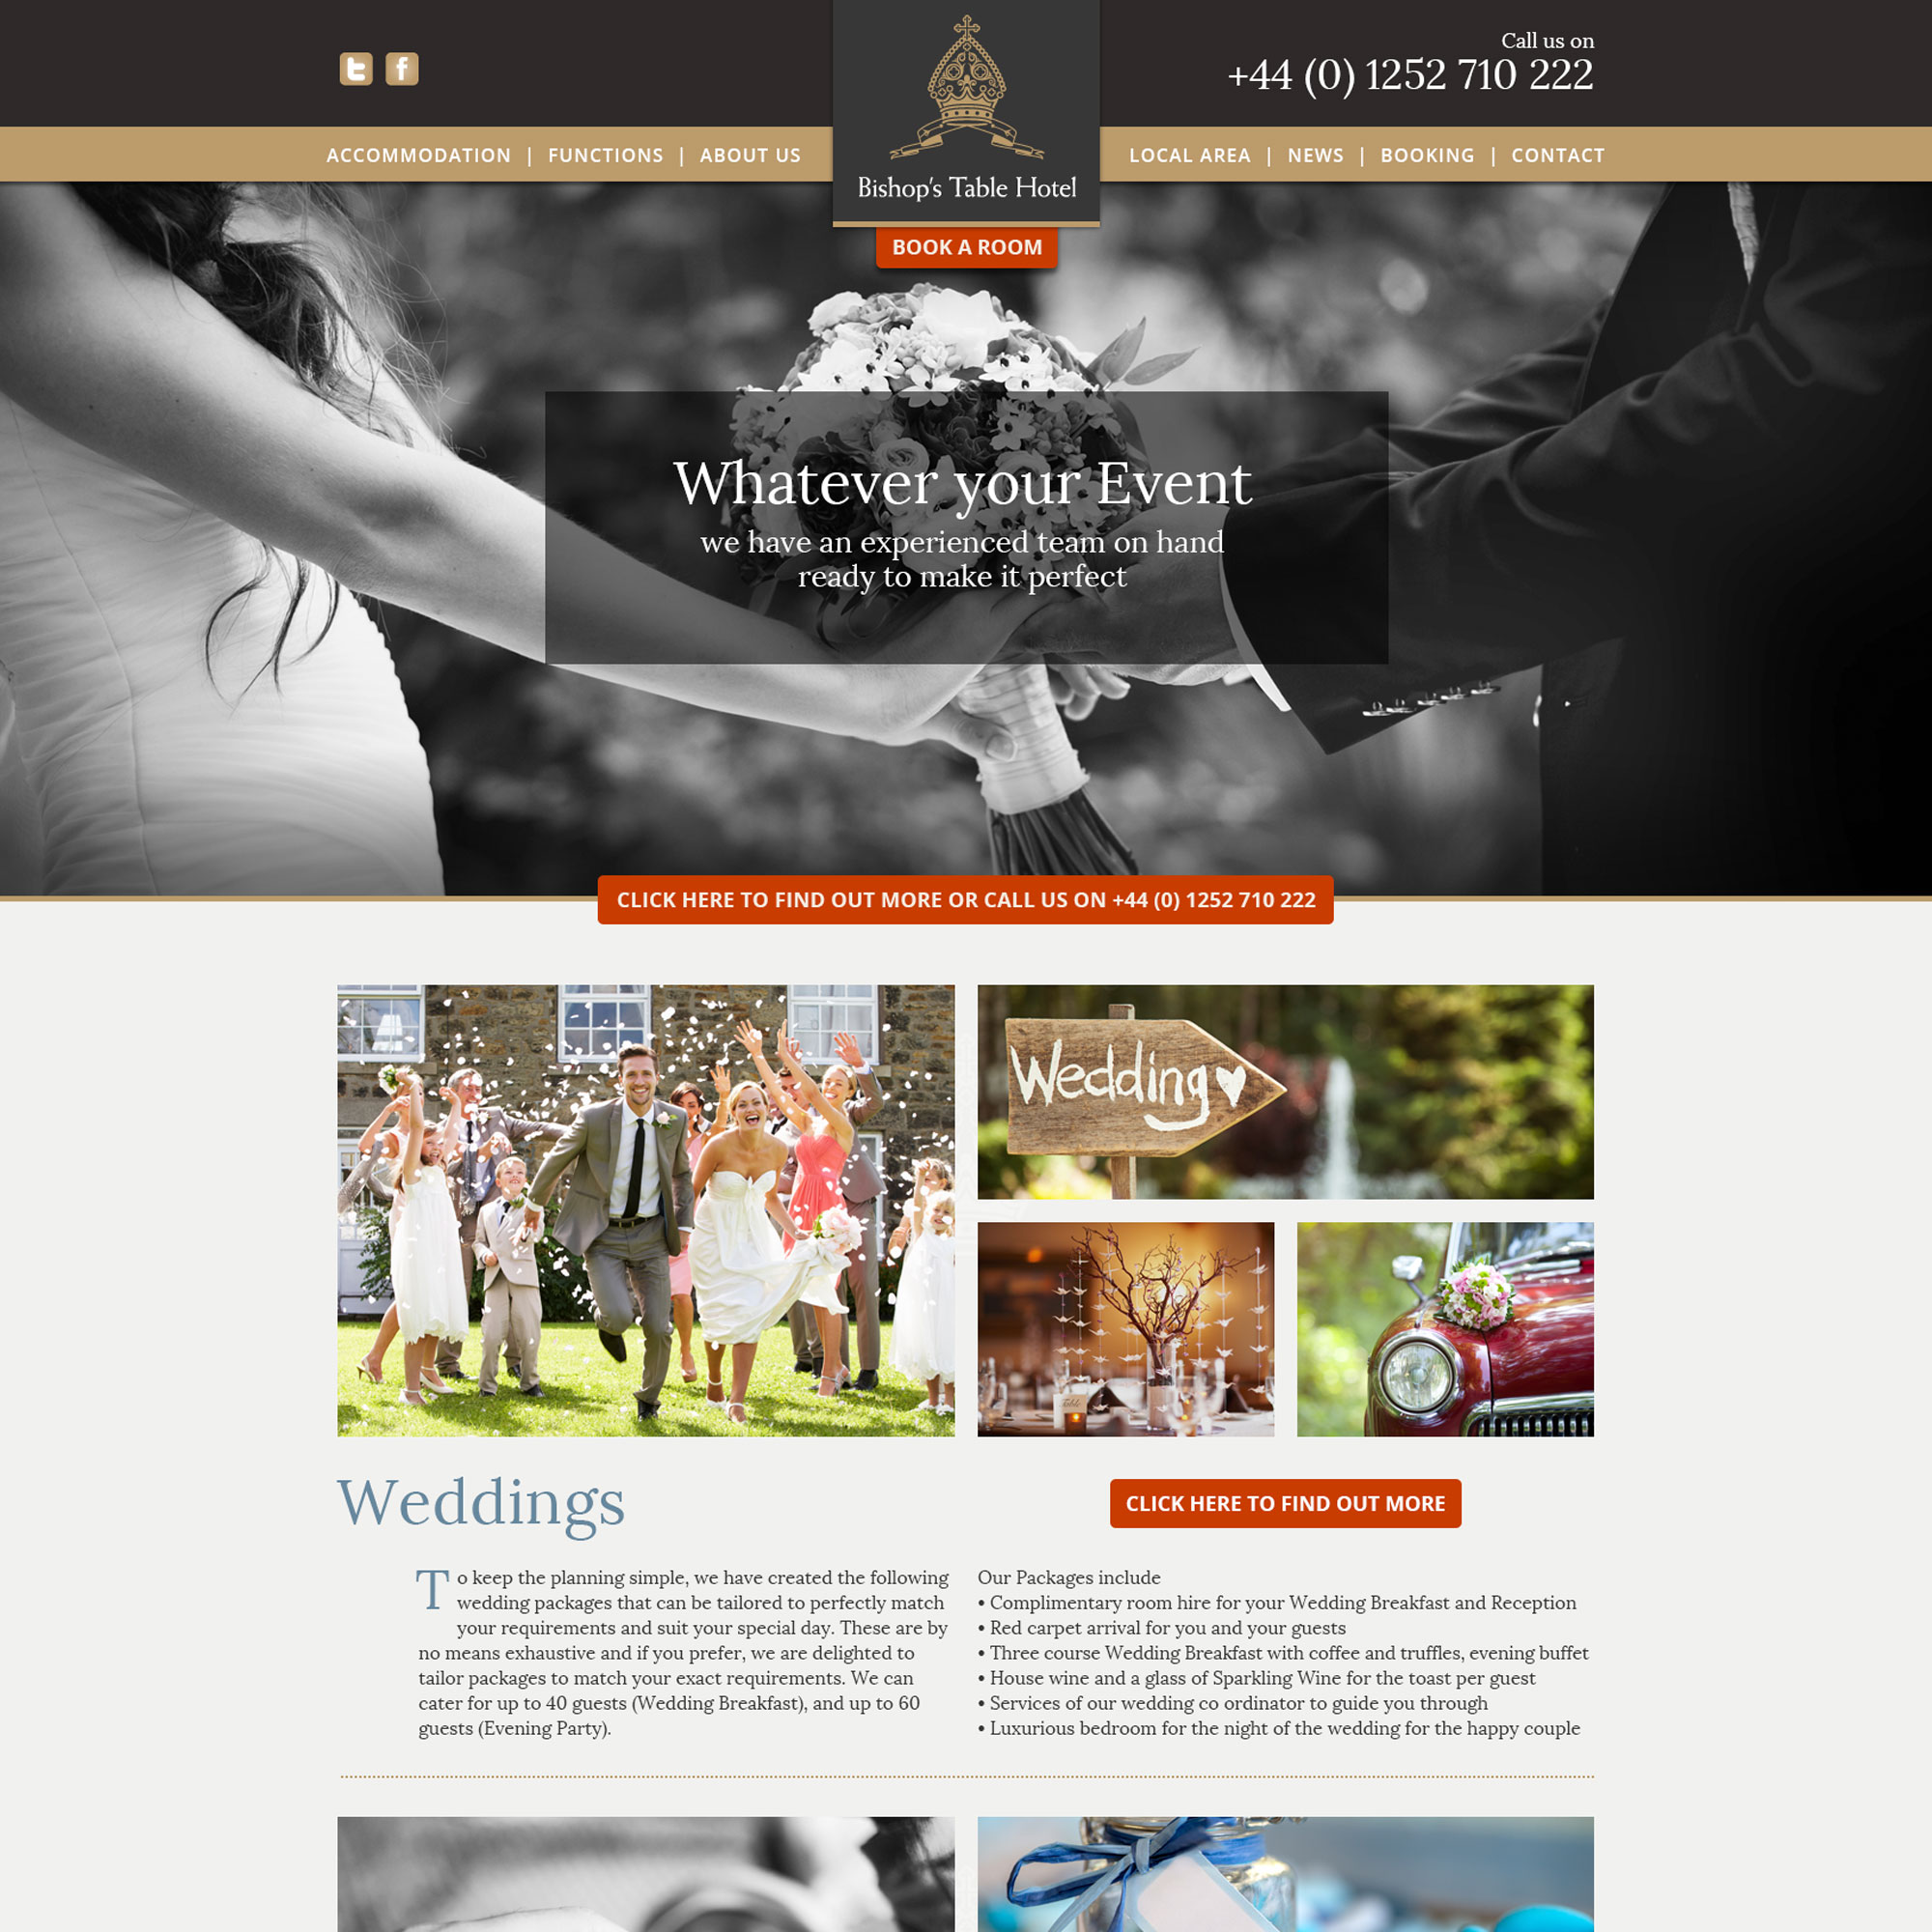 bishops table new website events page